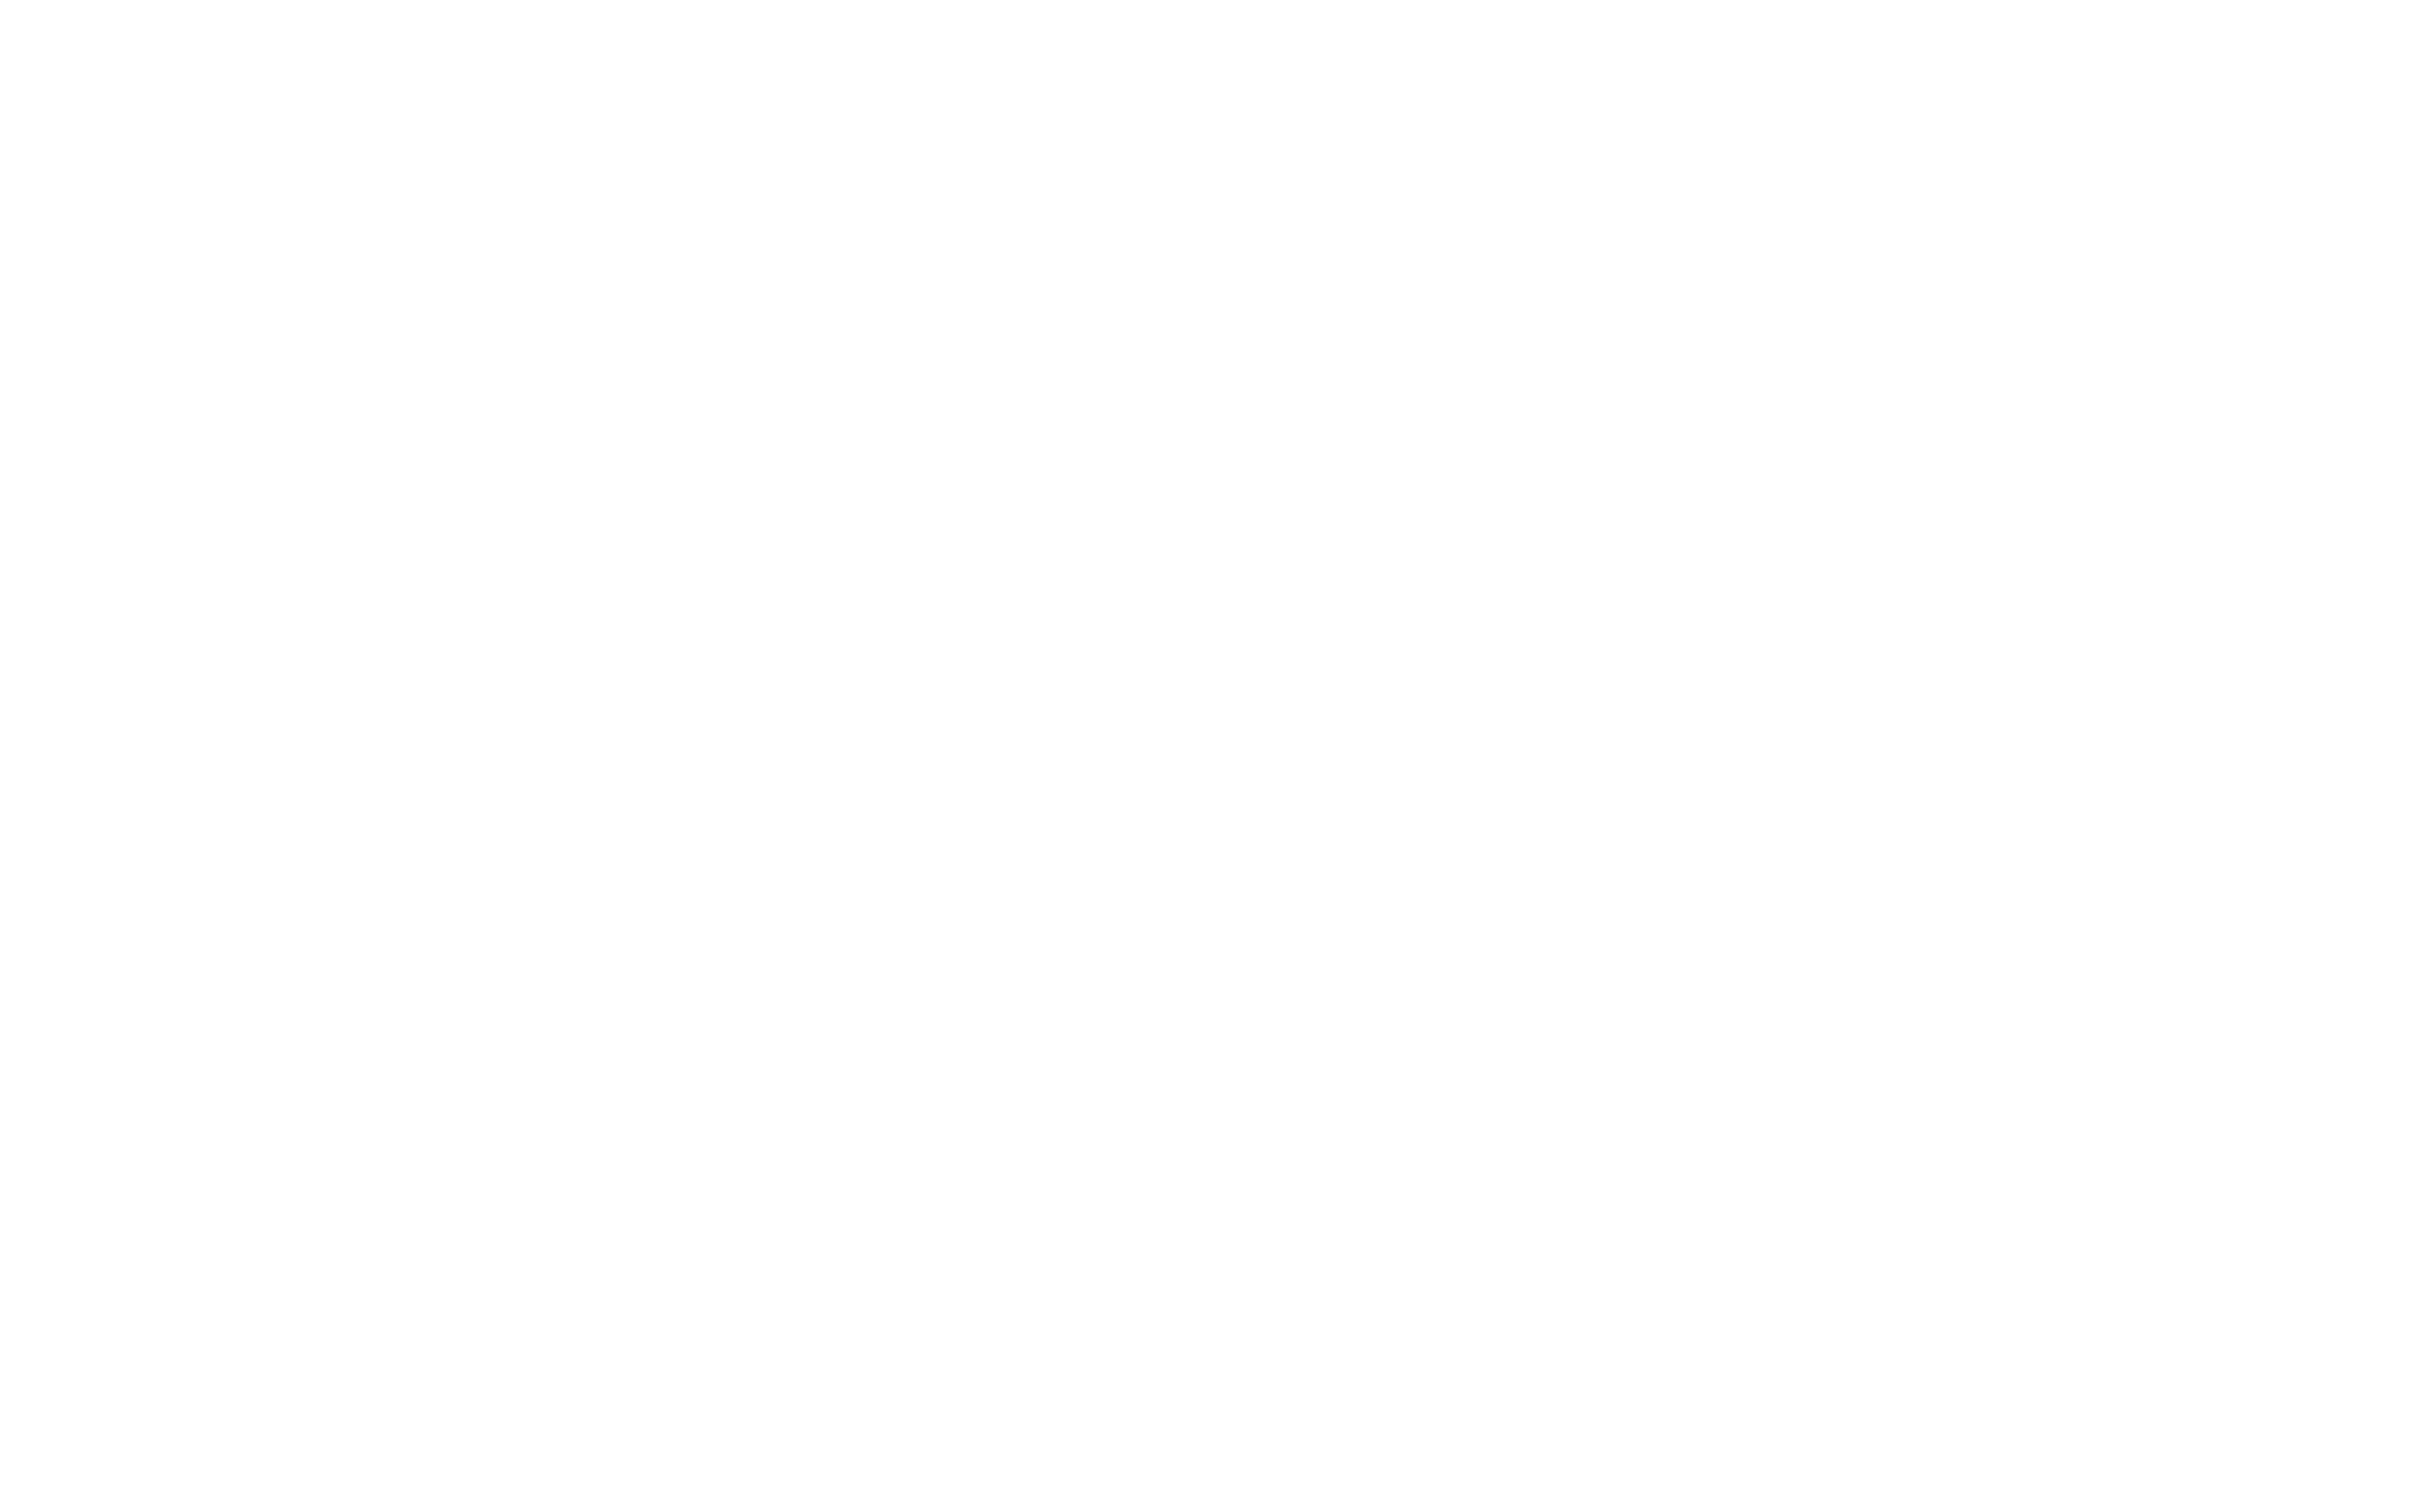 Badlands icon